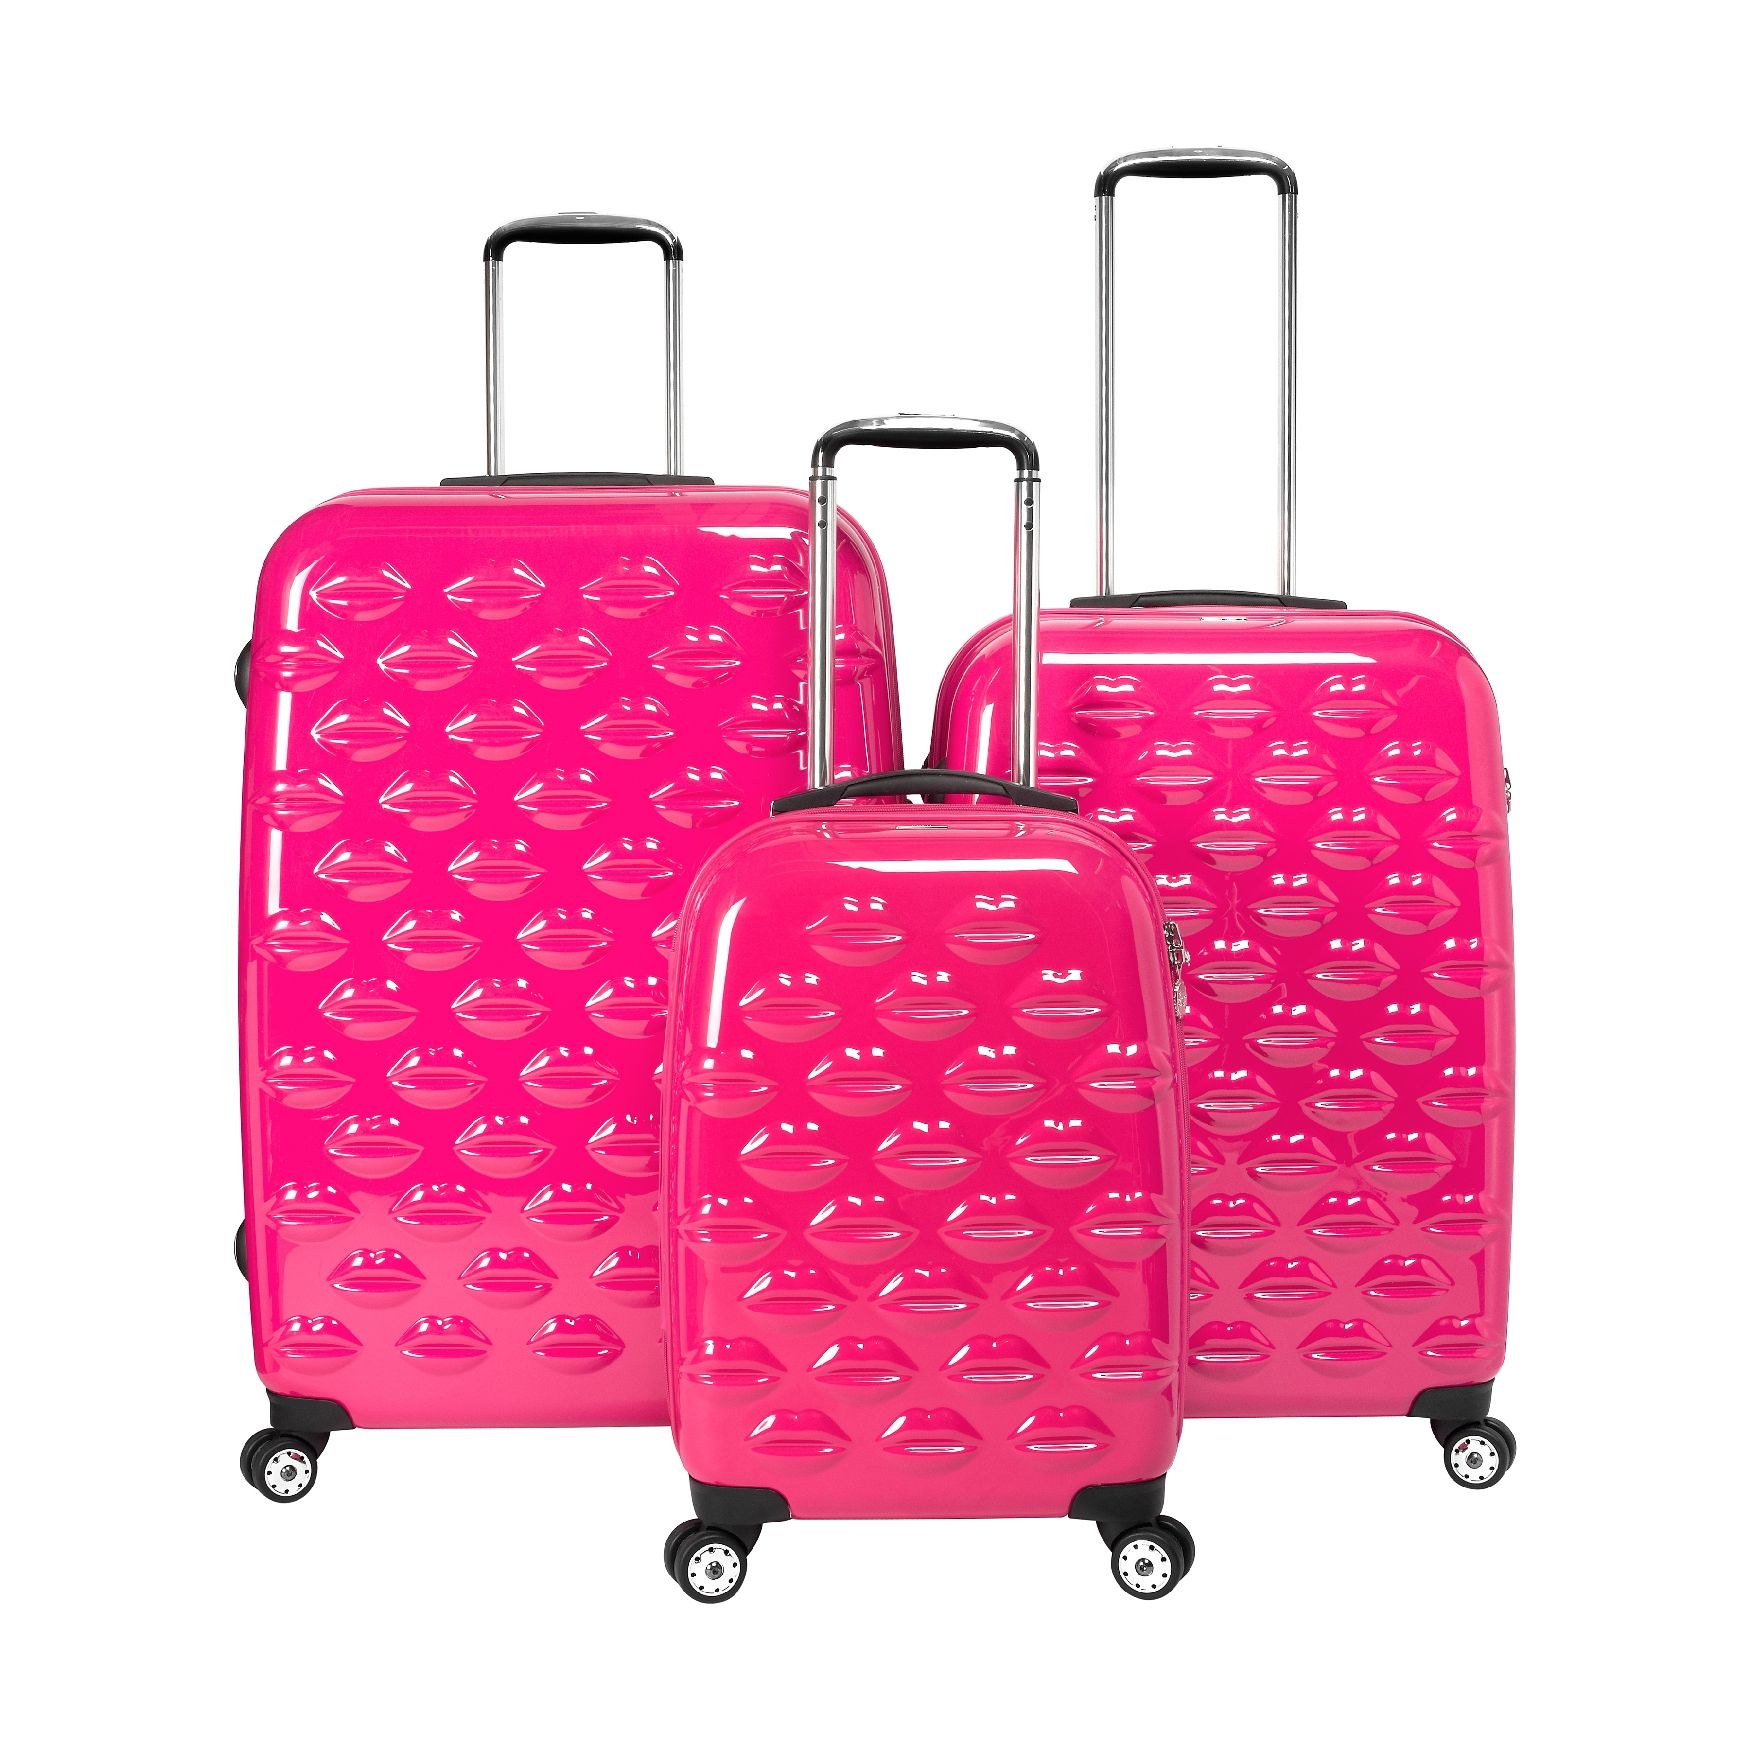 Hot Pink Luggage Set | Lulu Guinness | Lee's family reunion ...